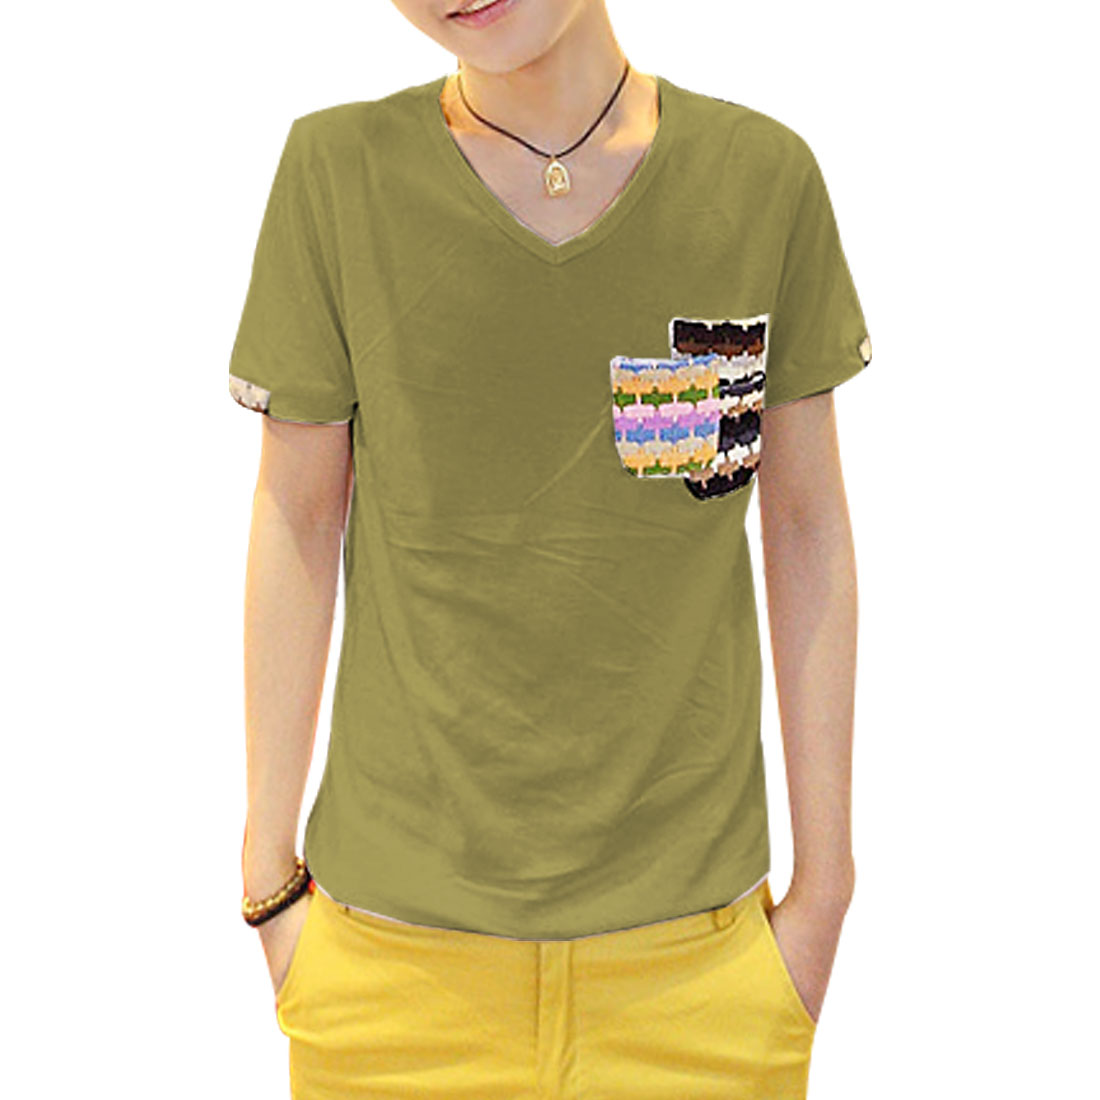 V Neck Round Hem Stylish Breast Pockets Men T-Shirt Olive Green S